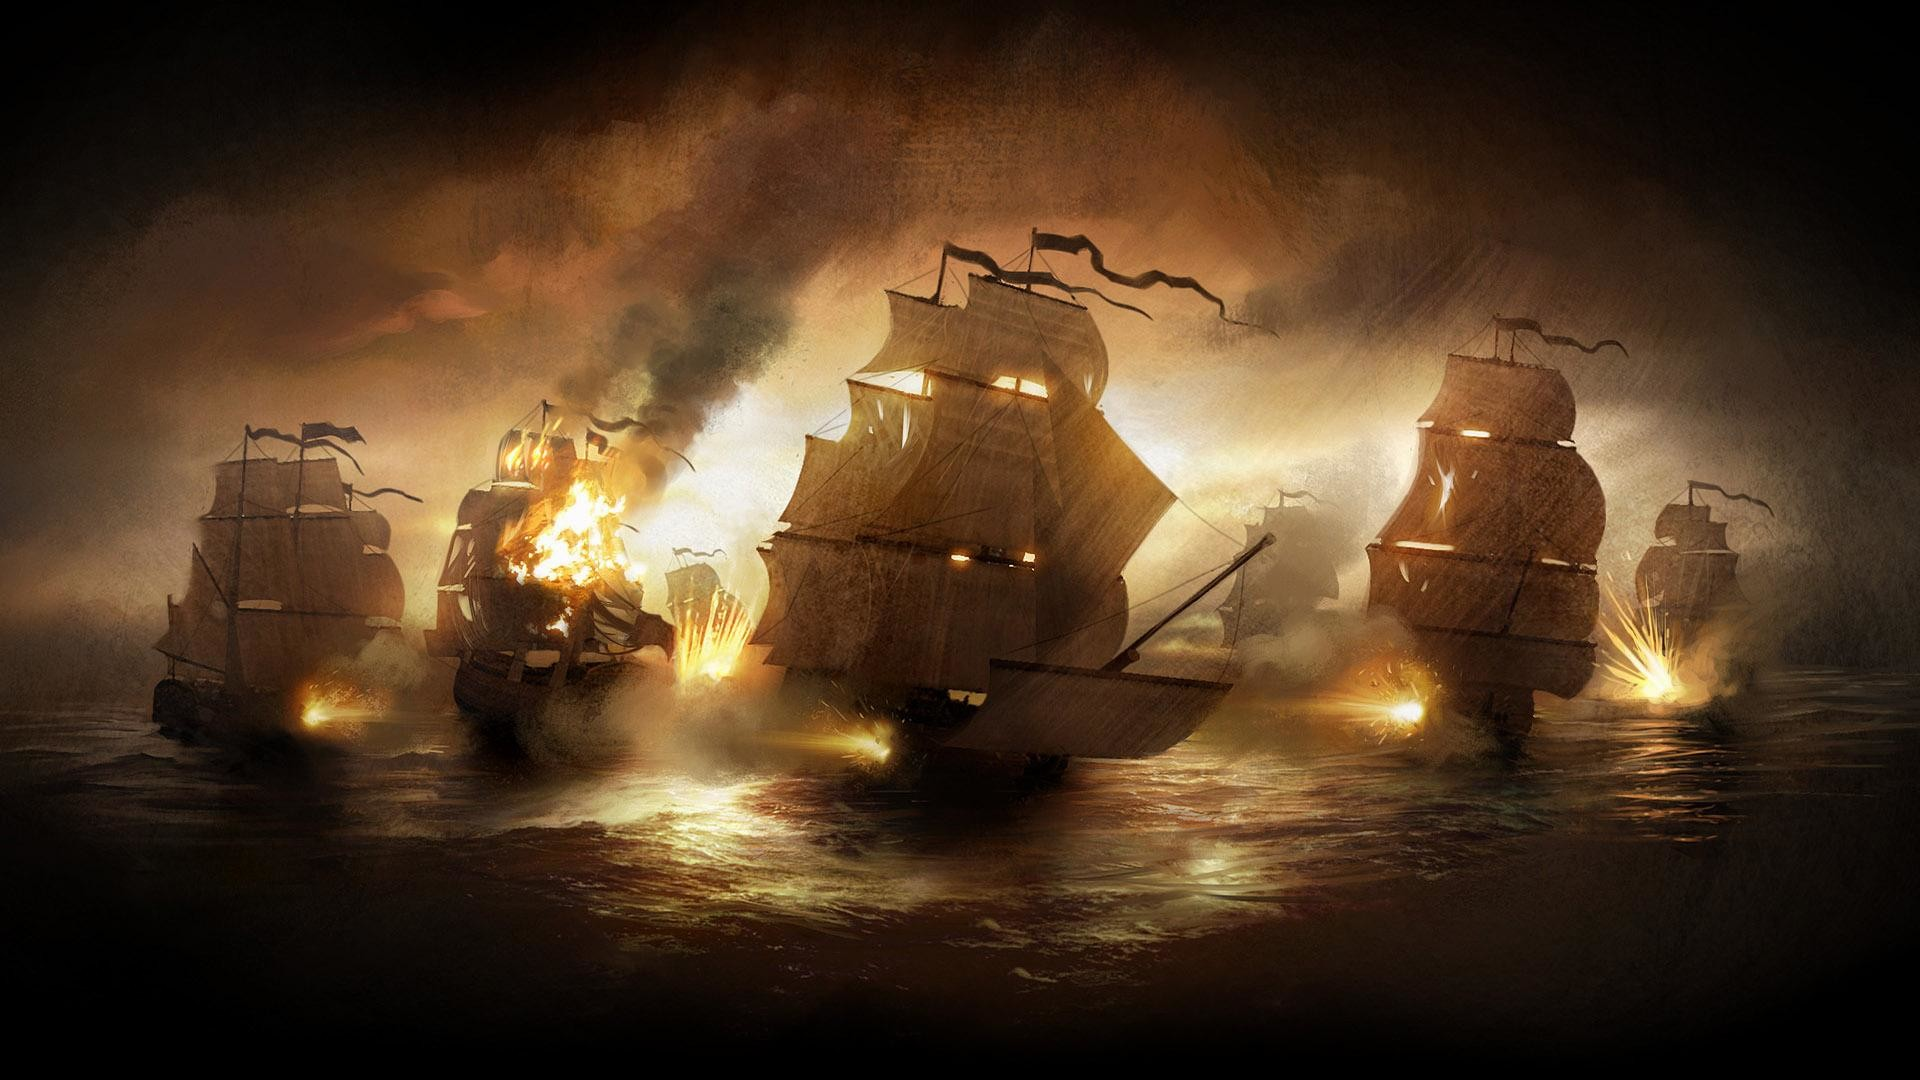 Ships-epic-wallpapers-HD-download